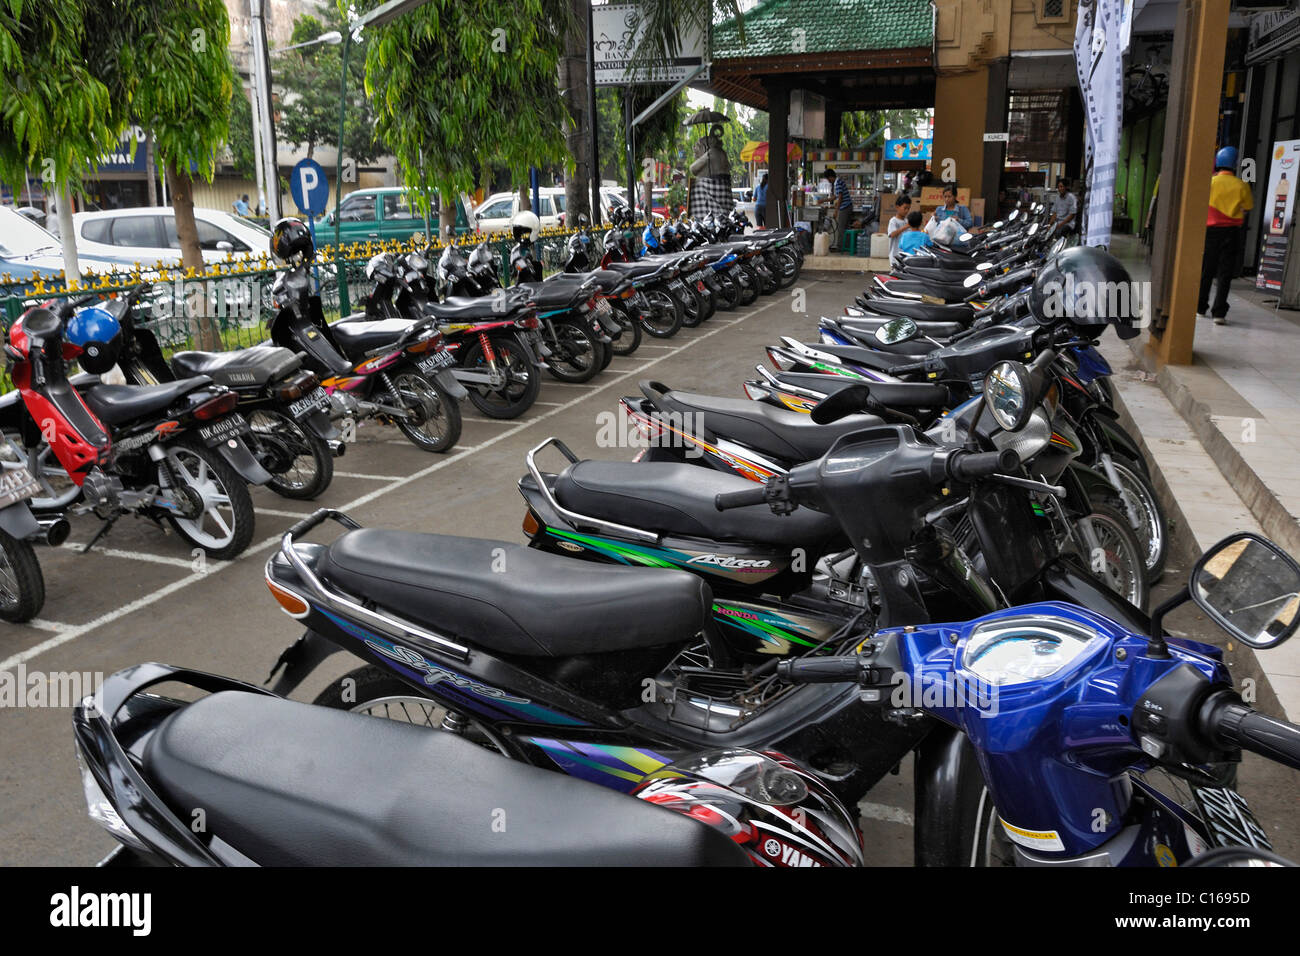 Motorbikes for hire in Klungkung, Bali, Indonesia, South East Asia - Stock Image